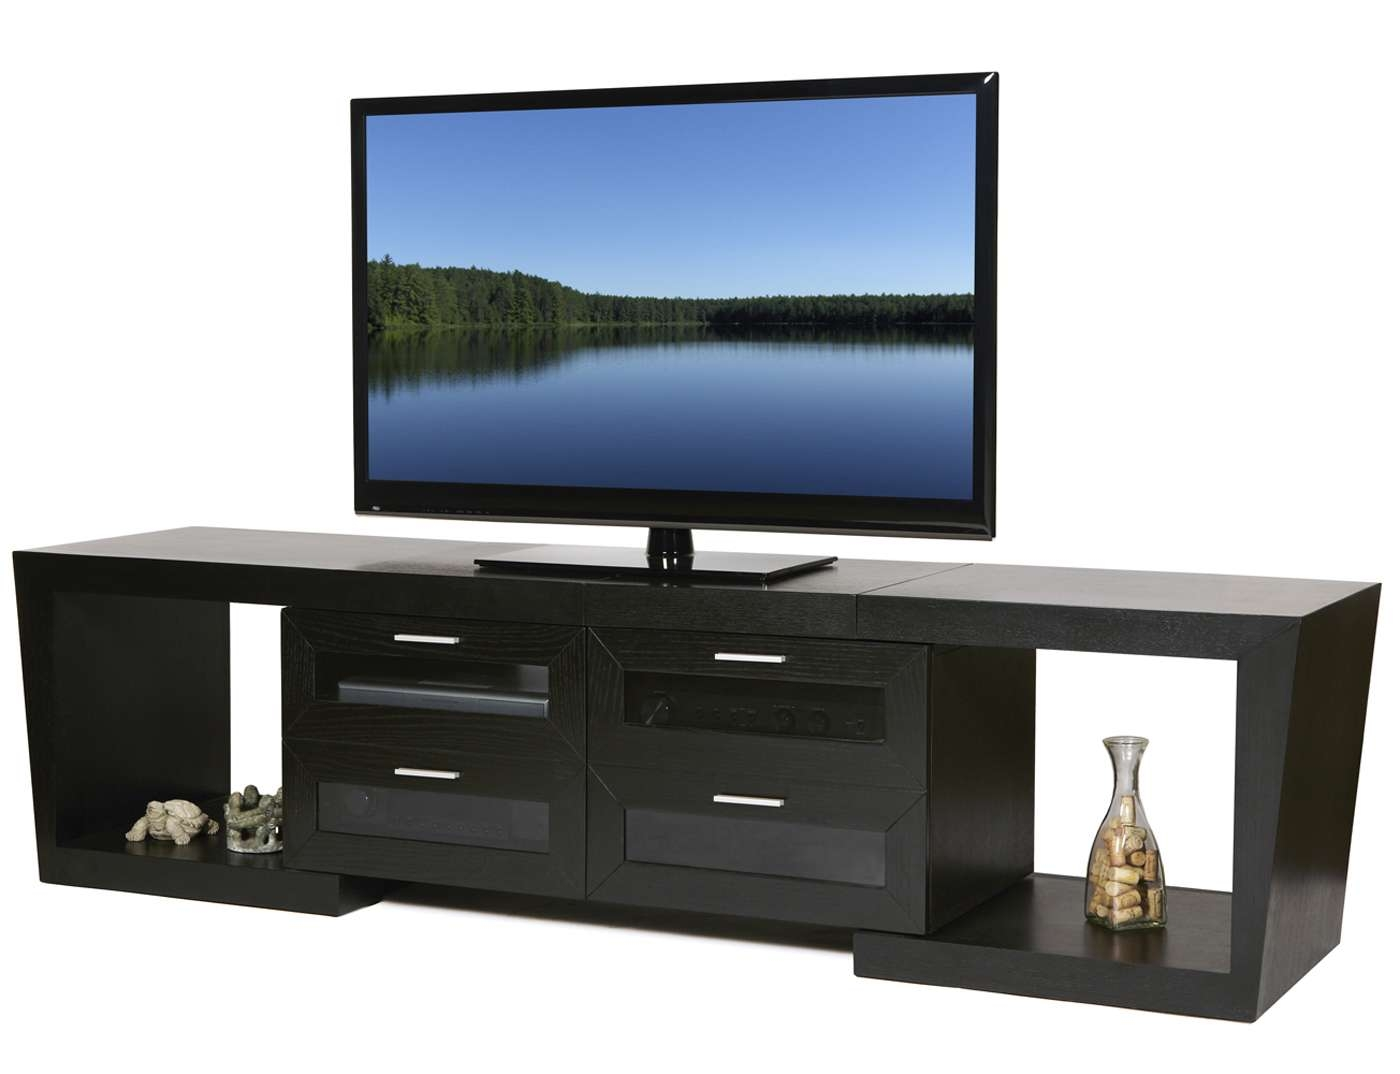 Rectangle Black Narrow Short Tv Stand With Square Shelves And In Modern Tv Stands For Flat Screens (View 11 of 15)